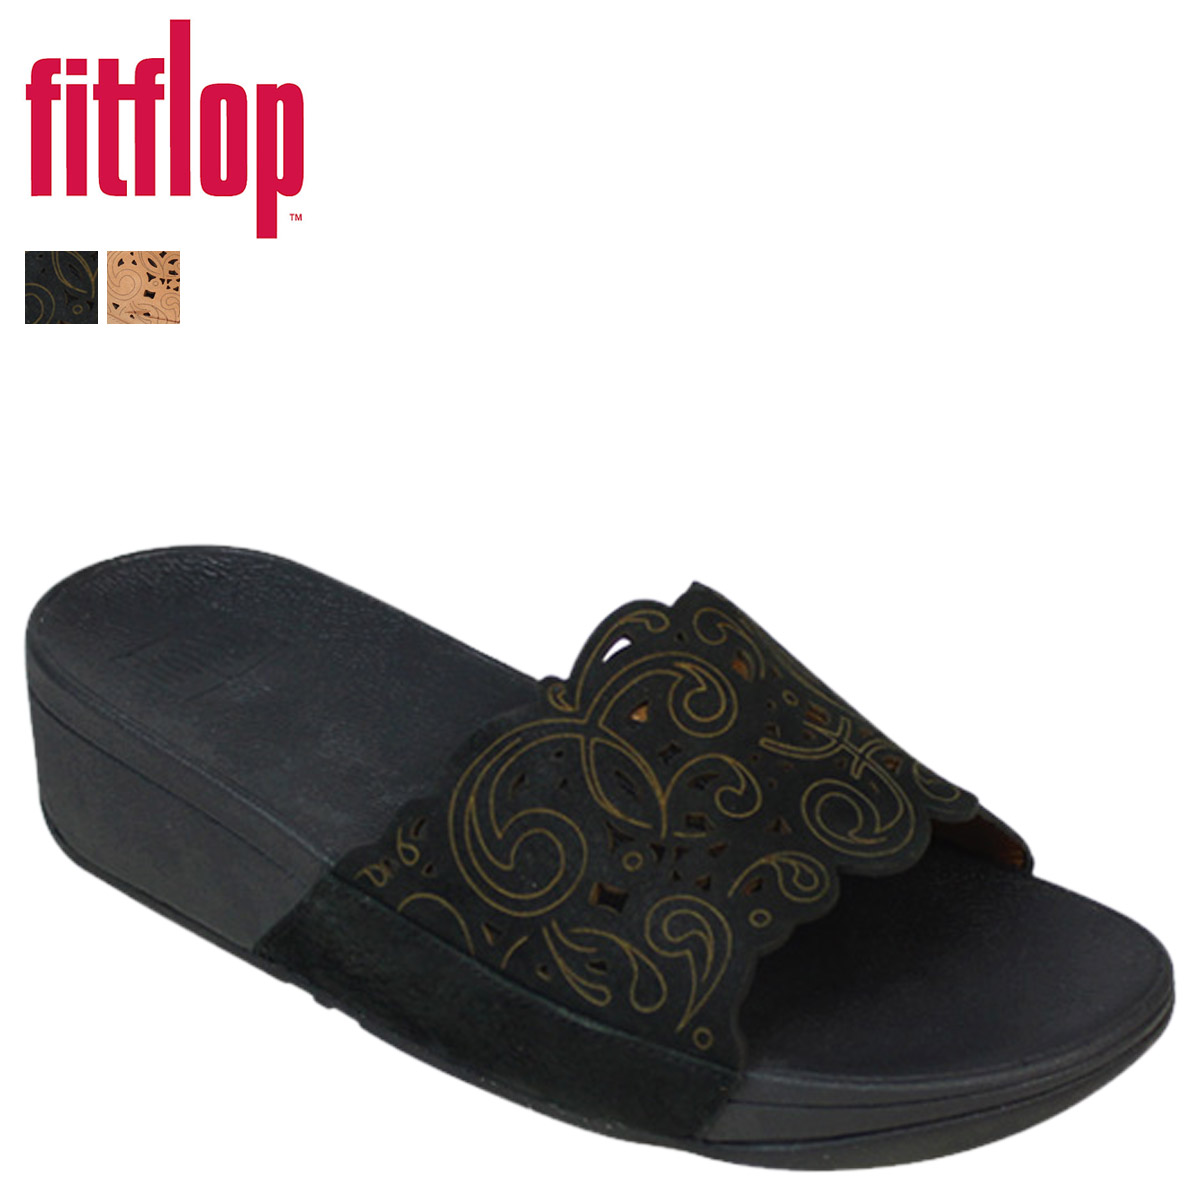 a1afb1c0ad62f «Pre-order items» «5 / 13 around some stock» fit flops FitFlop women's  flora Slide Sandals FLORA SLIDE nubuck 500 2 color [5 / 13 new stock]  [regular] ...